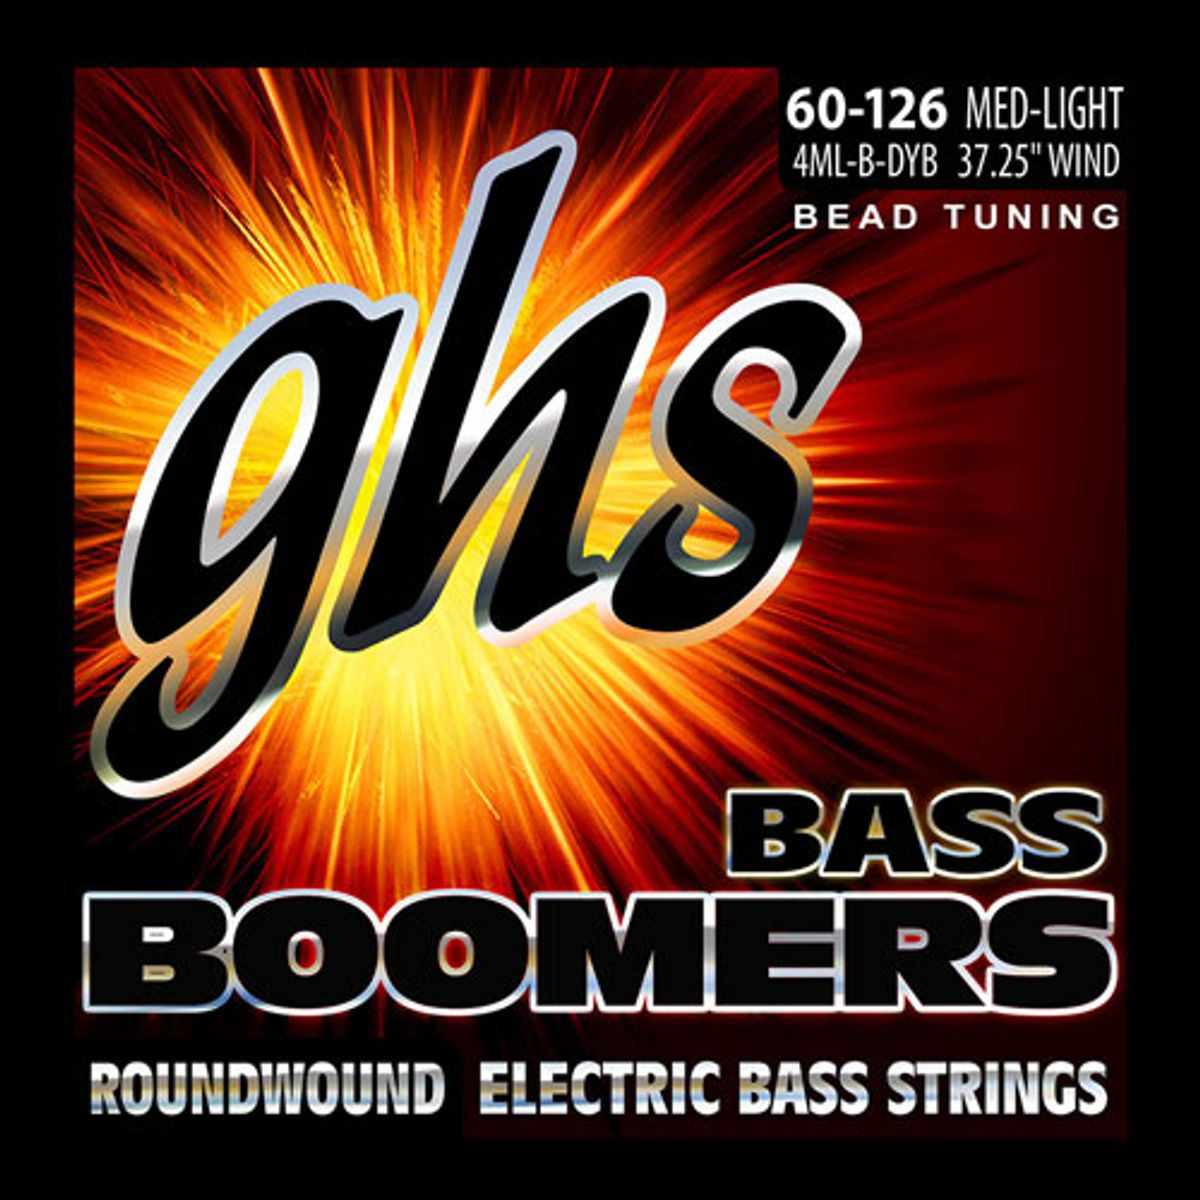 GHS Strings Introduces BEAD Tuned Bass Boomers